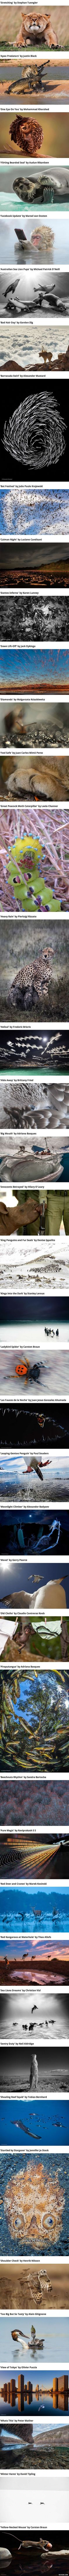 Finalists Of The 2014 Wildlife Photographer Of The Year Competition Will Leave You Wanting More - 9GAG